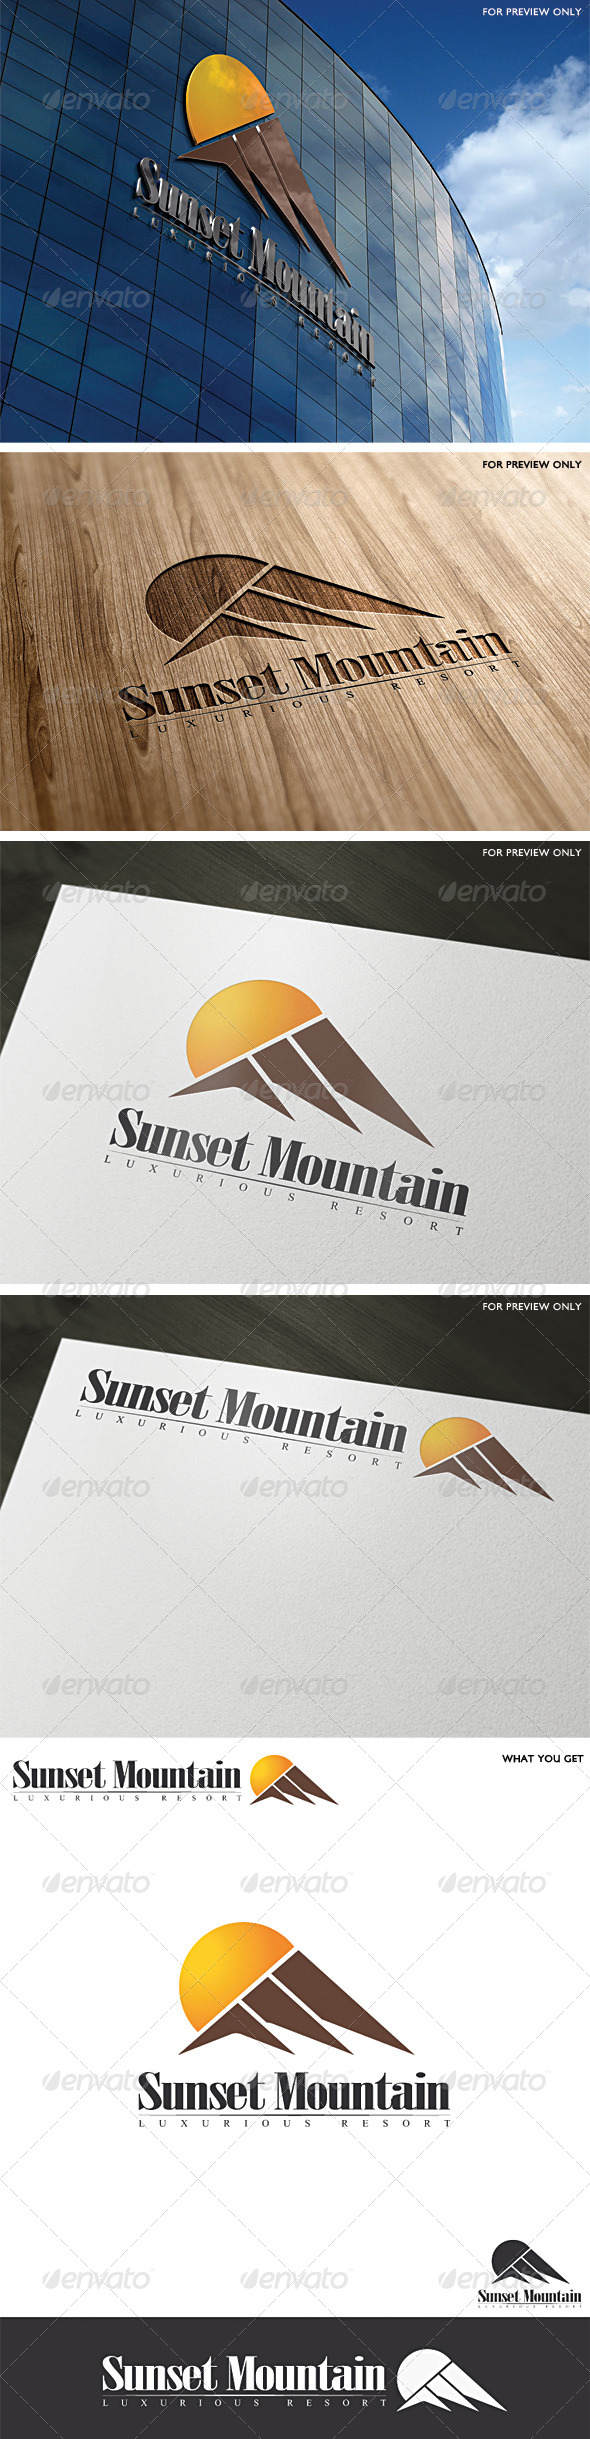 GraphicRiver Sunset Mountain Resort Logo Template 5219716